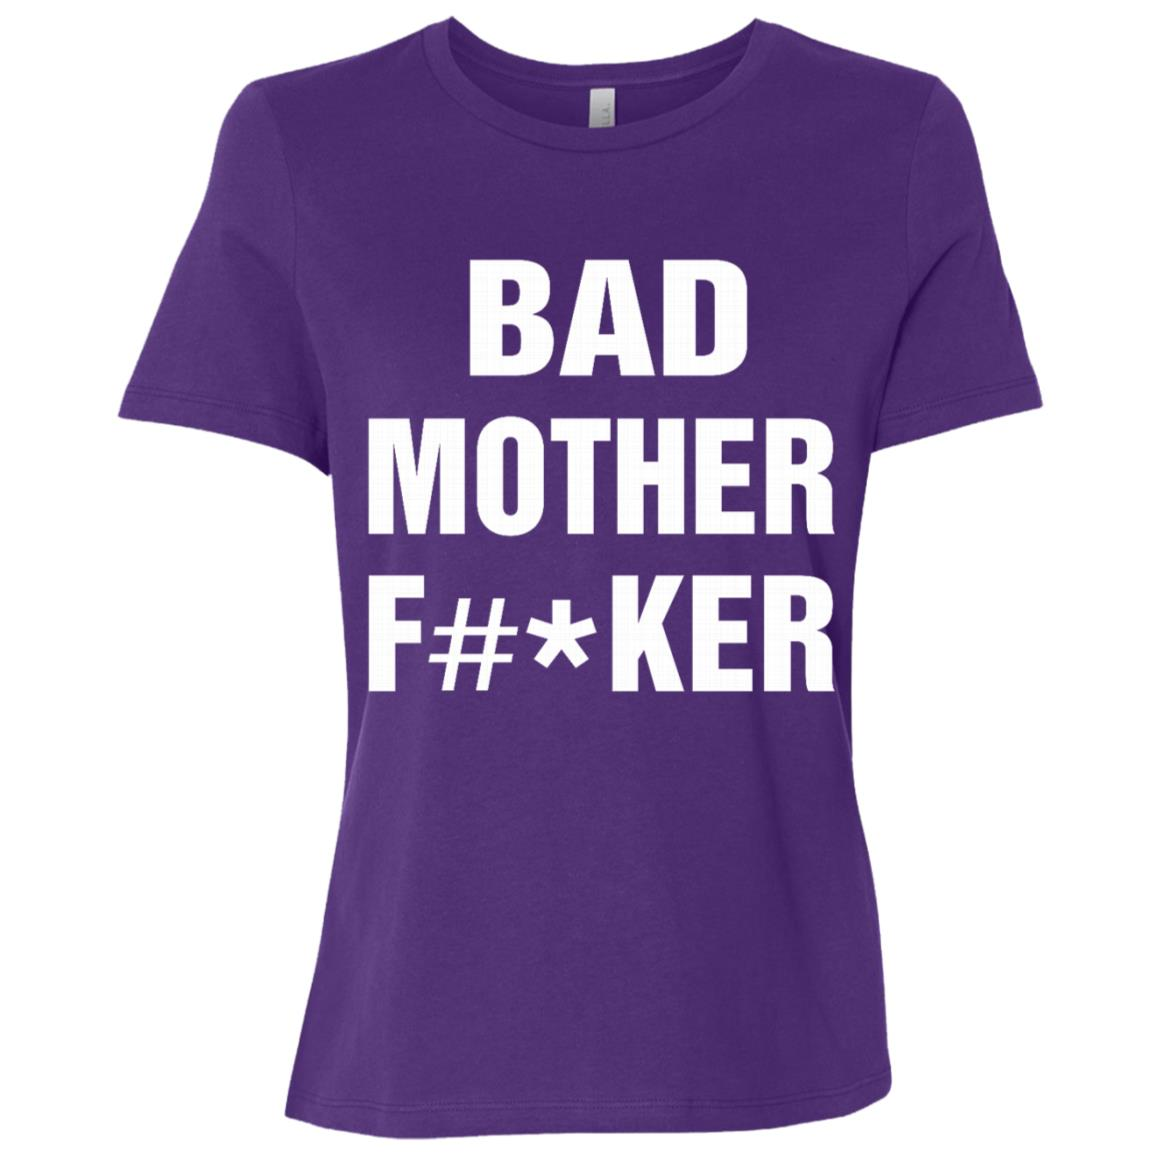 Bad Mother F -ker – Funny Mom gifts – Best gifts Mommy Women Short Sleeve T-Shirt